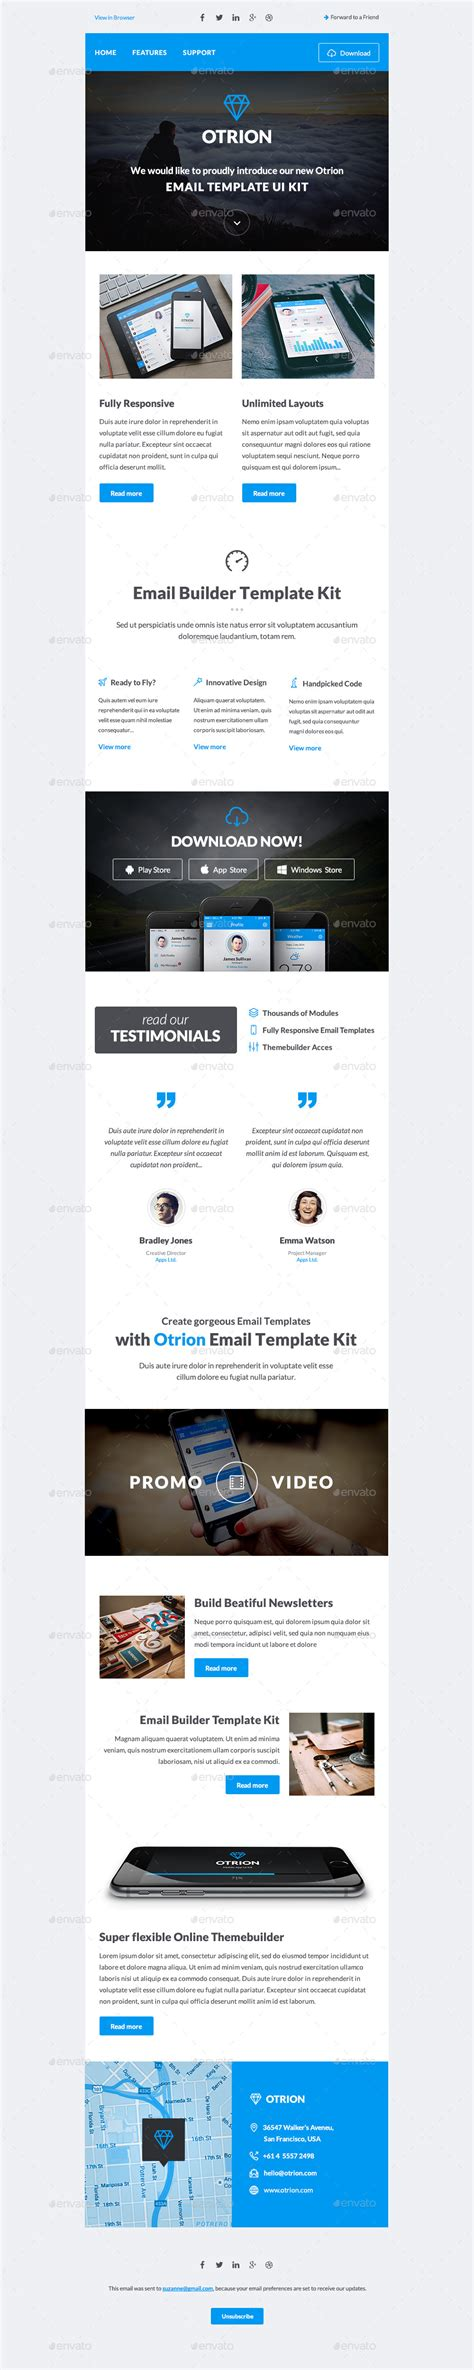 Otrion E Mail Template Builder By Megyunkborabora Graphicriver Email Template Builder Software